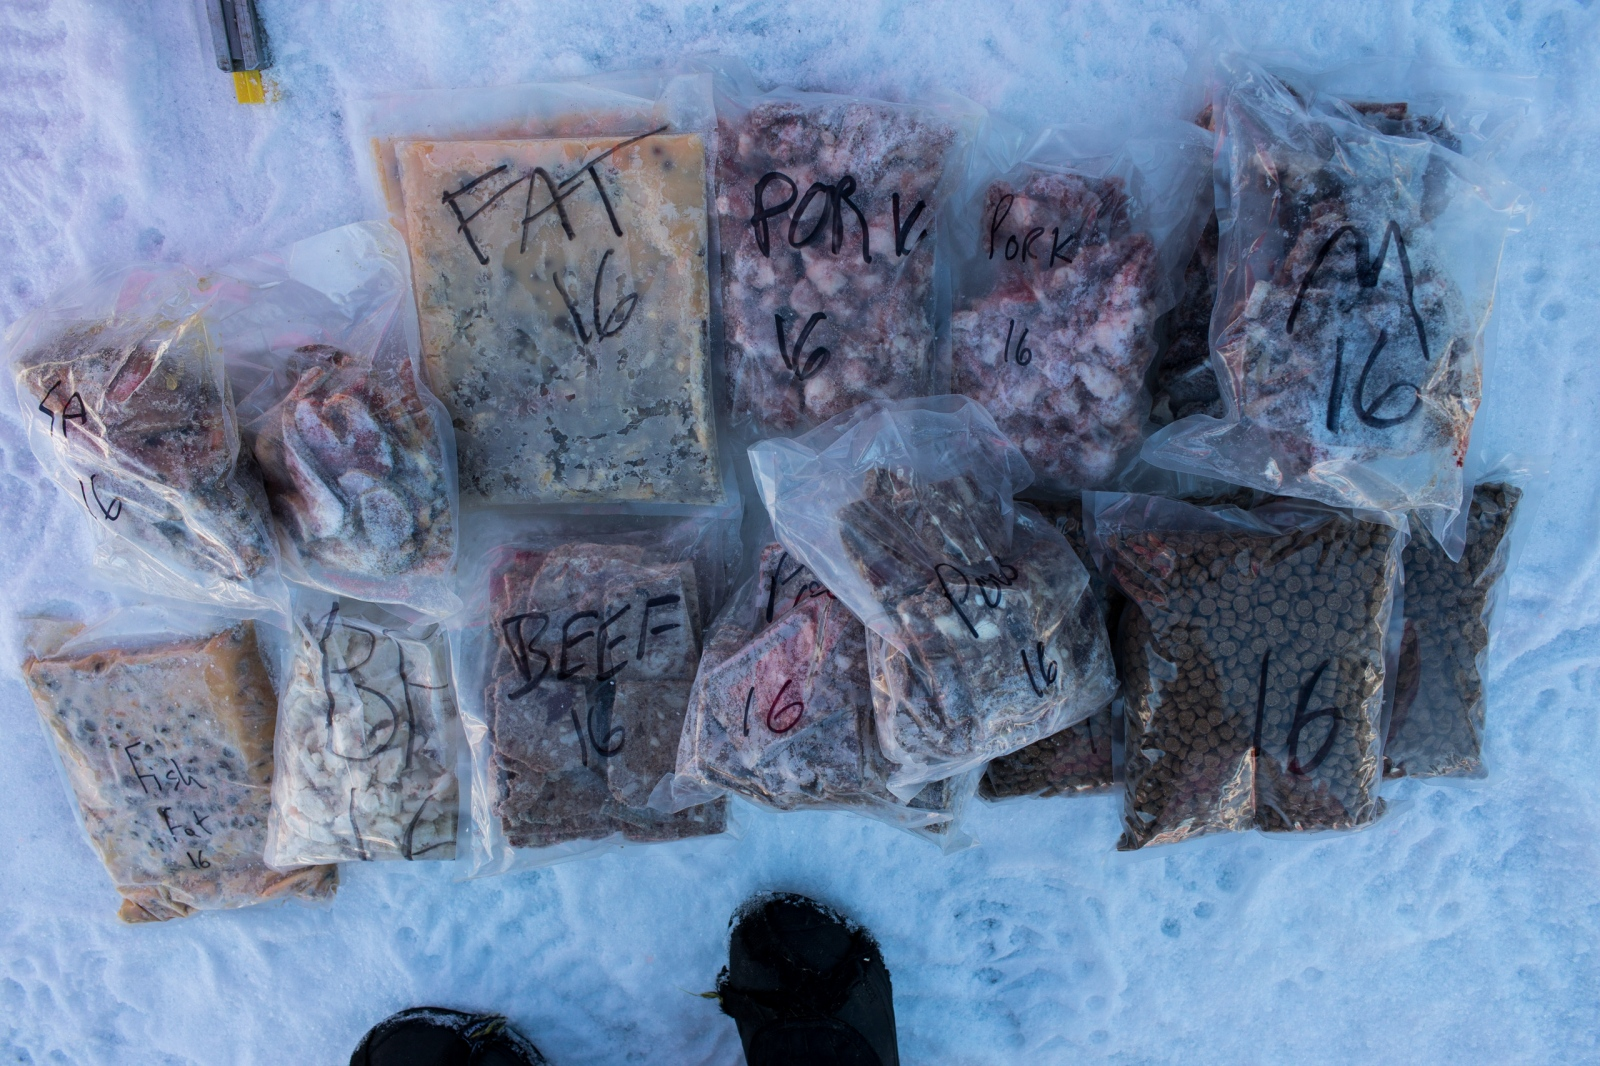 A handler lays out food for DeeDee Jonrowe's dog team at the 2016 Iditarod restart in Willow, Alaska on March 6, 2016.